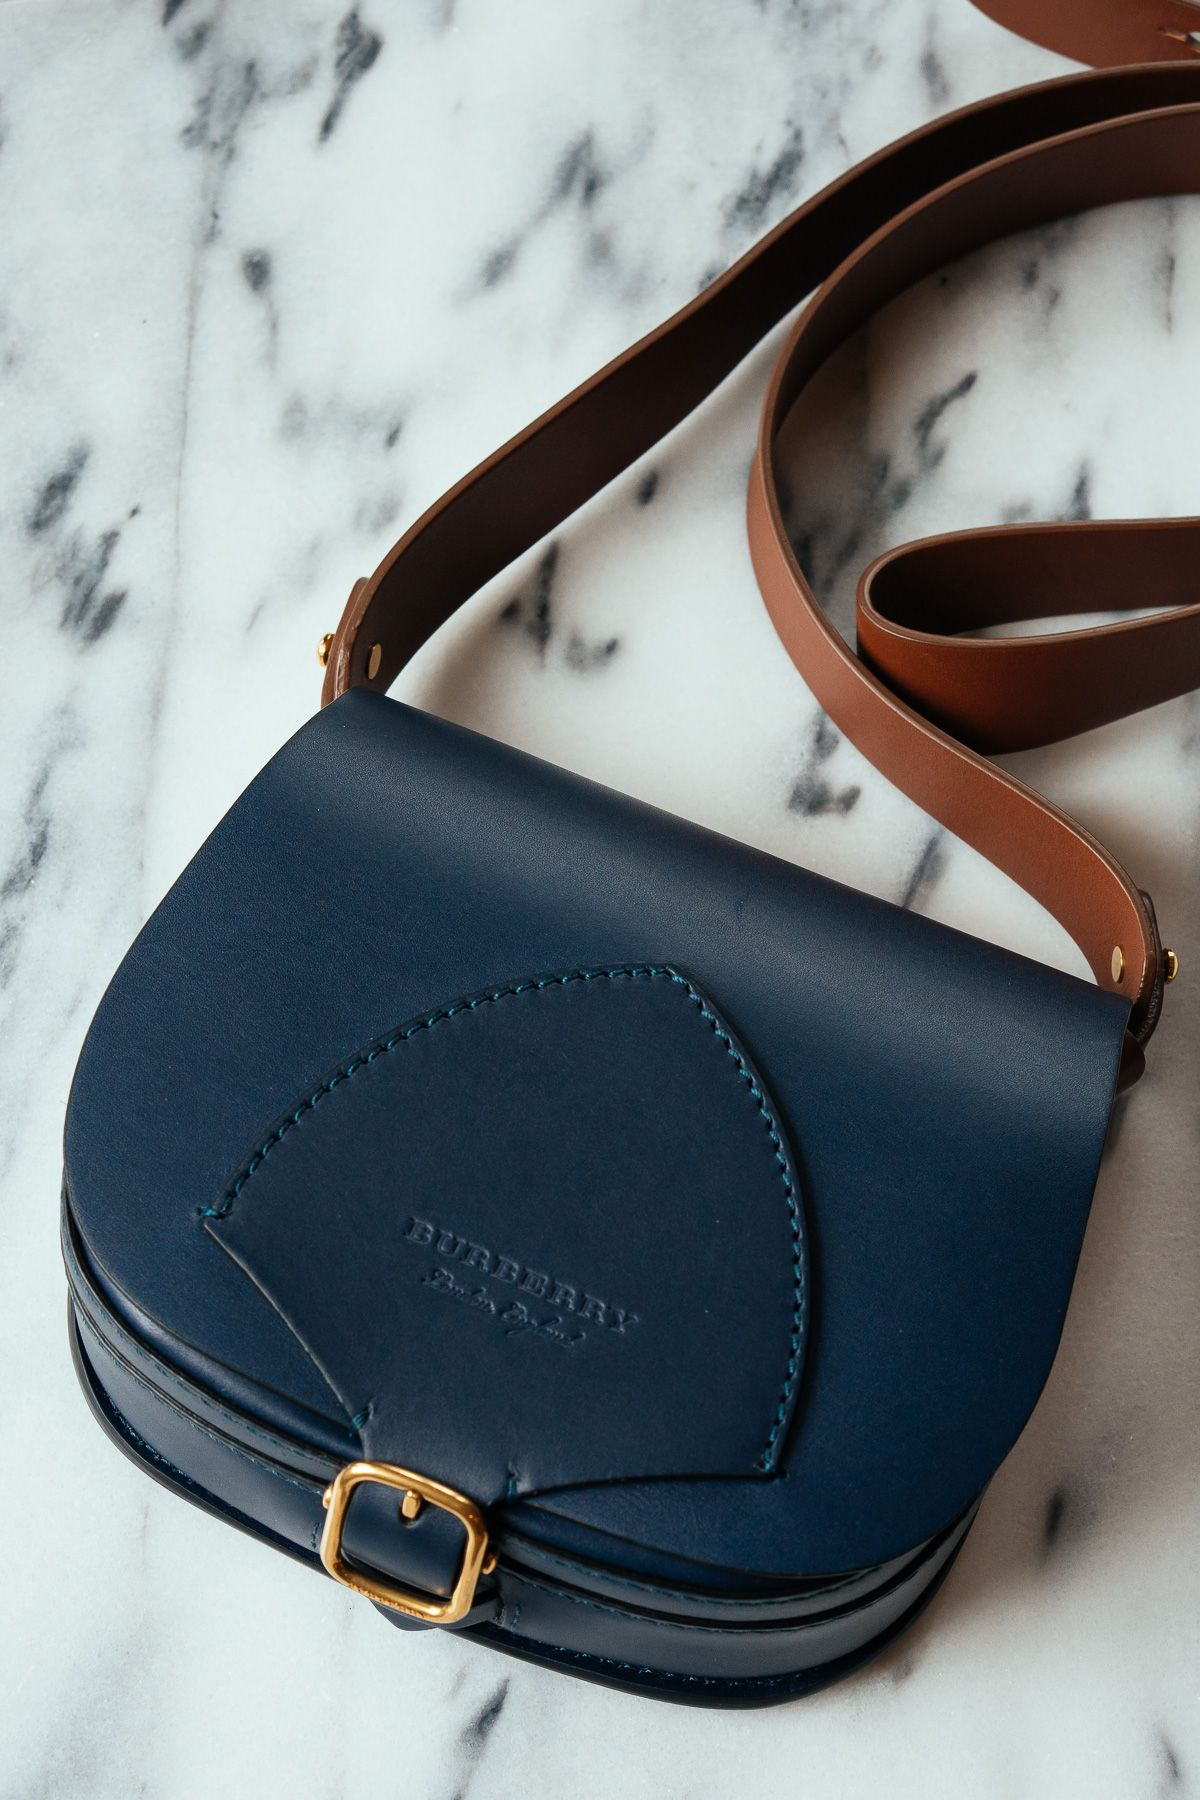 65e38fc4aa5 1395 Meet Our Latest Bag Crush  The Burberry Satchel in Indigo Leather -  PurseBlog